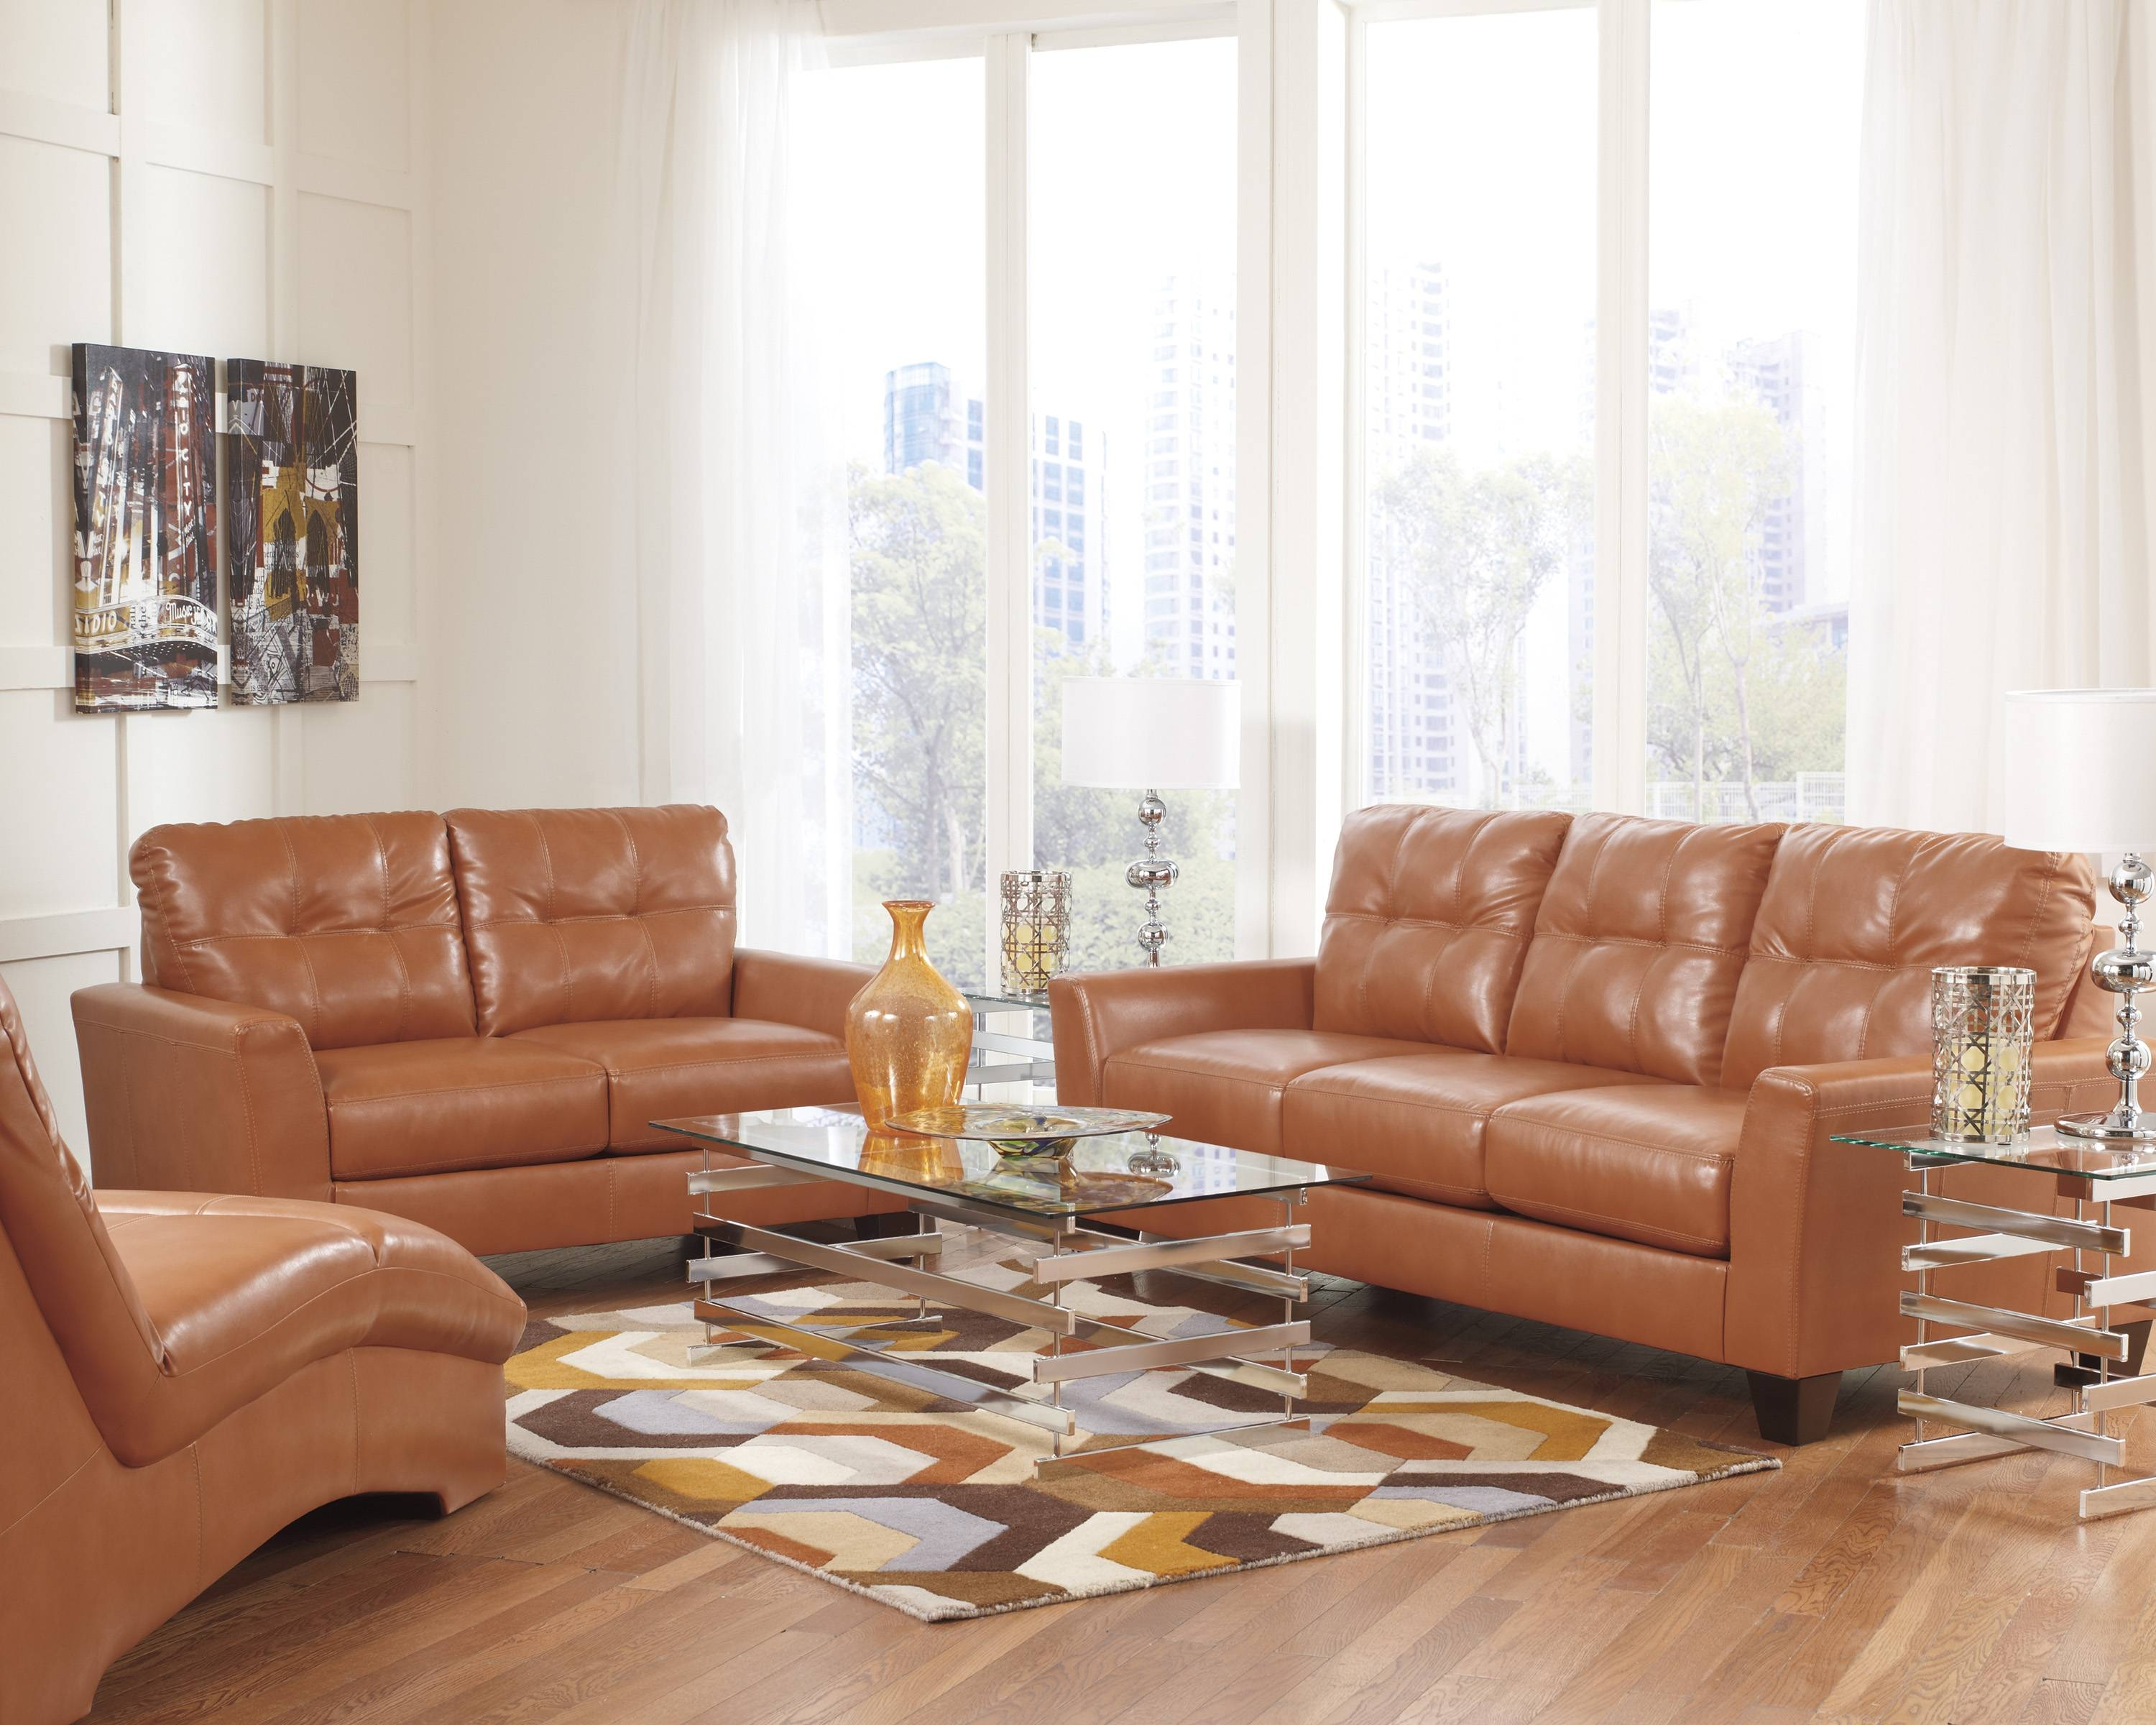 Orange Sectional Sofa Rooms To Go Living Room Furniture Gray And Inside  Burnt Orange Leather Sectional